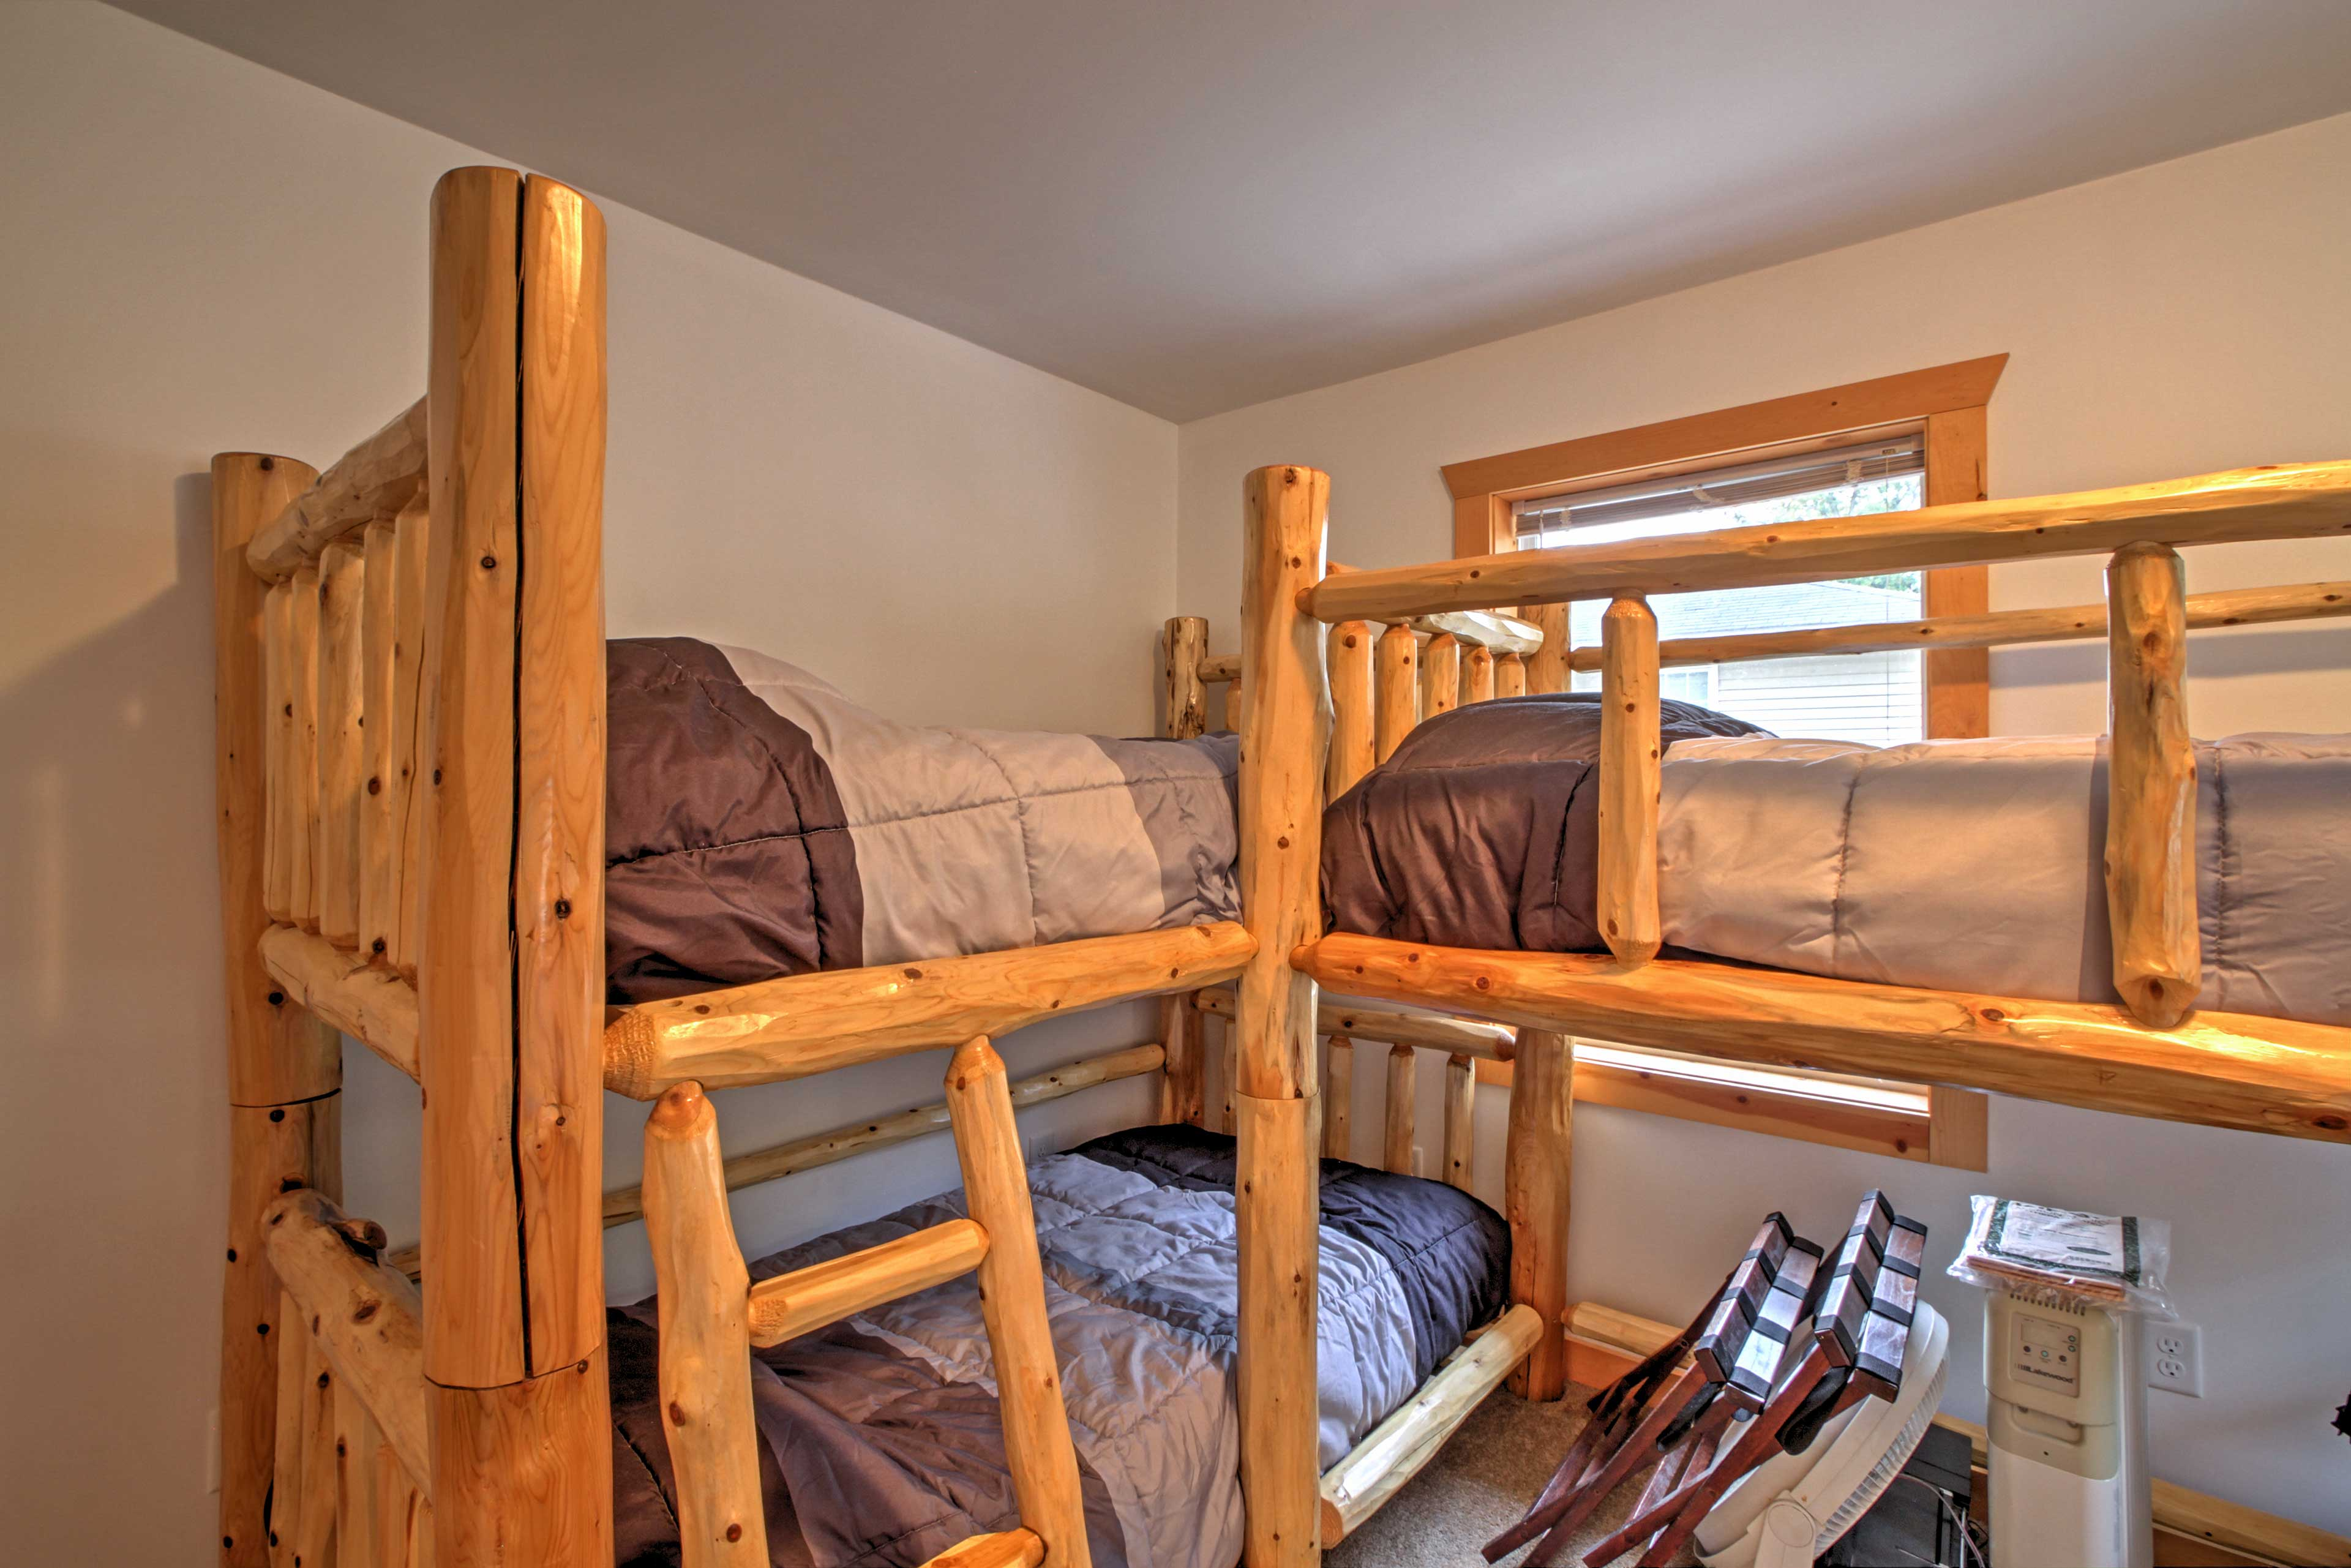 But first, tuck the kids into the bunk bed.